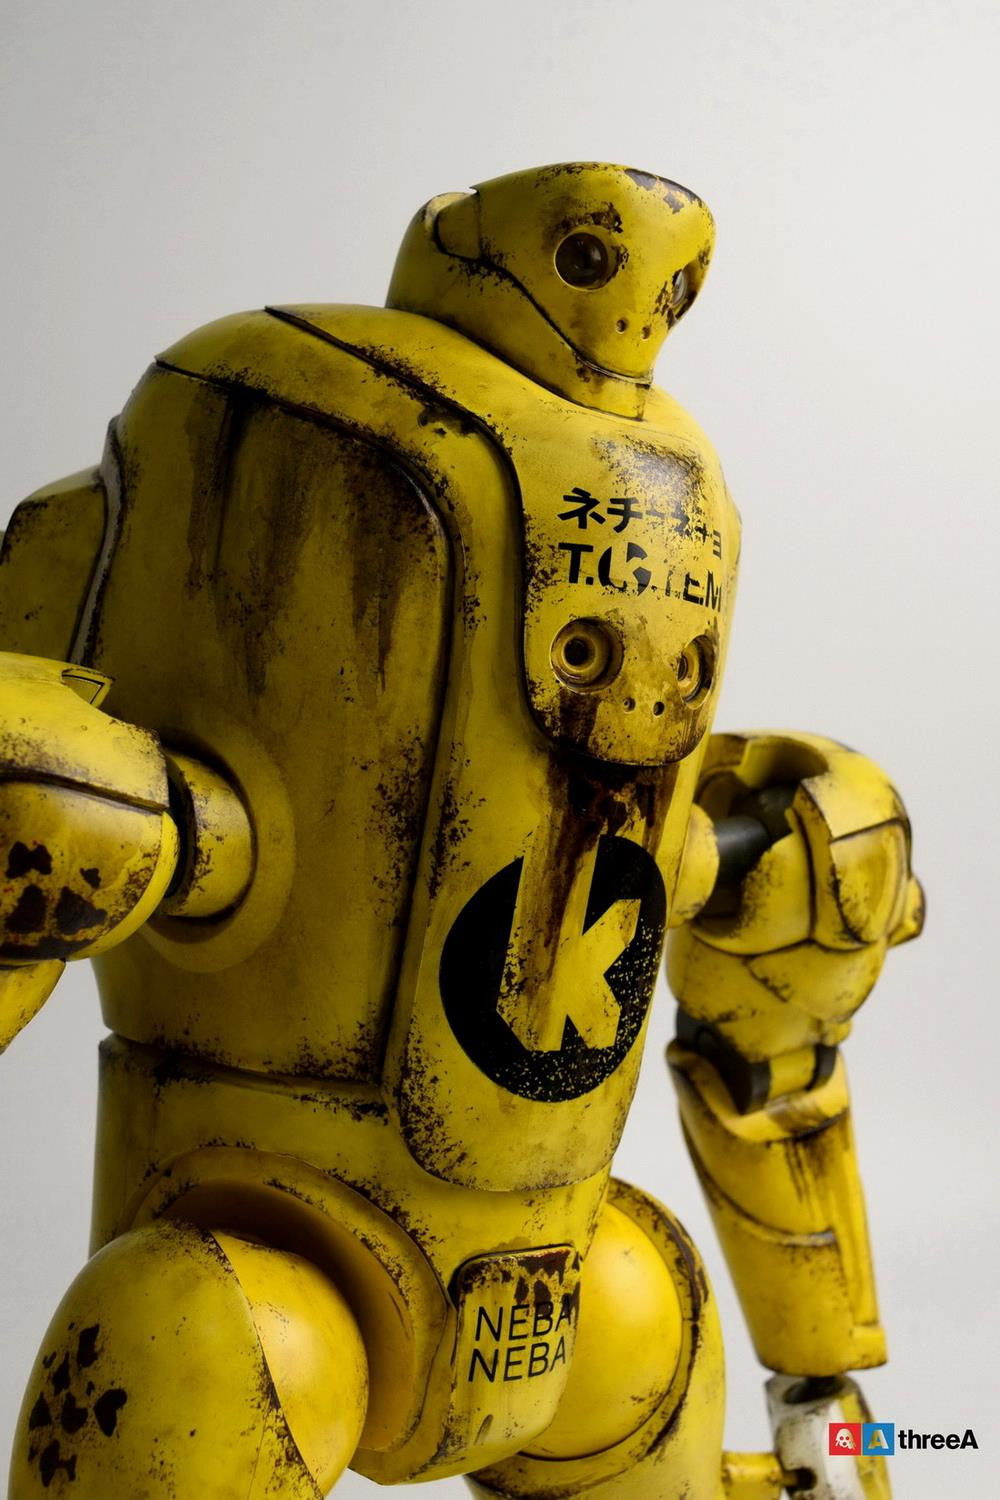 ThreeA - Evenfall - 1/6 T.O.T.E.M Thug Pugillo - K Striker-047 (Yellow) - Marvelous Toys - 6